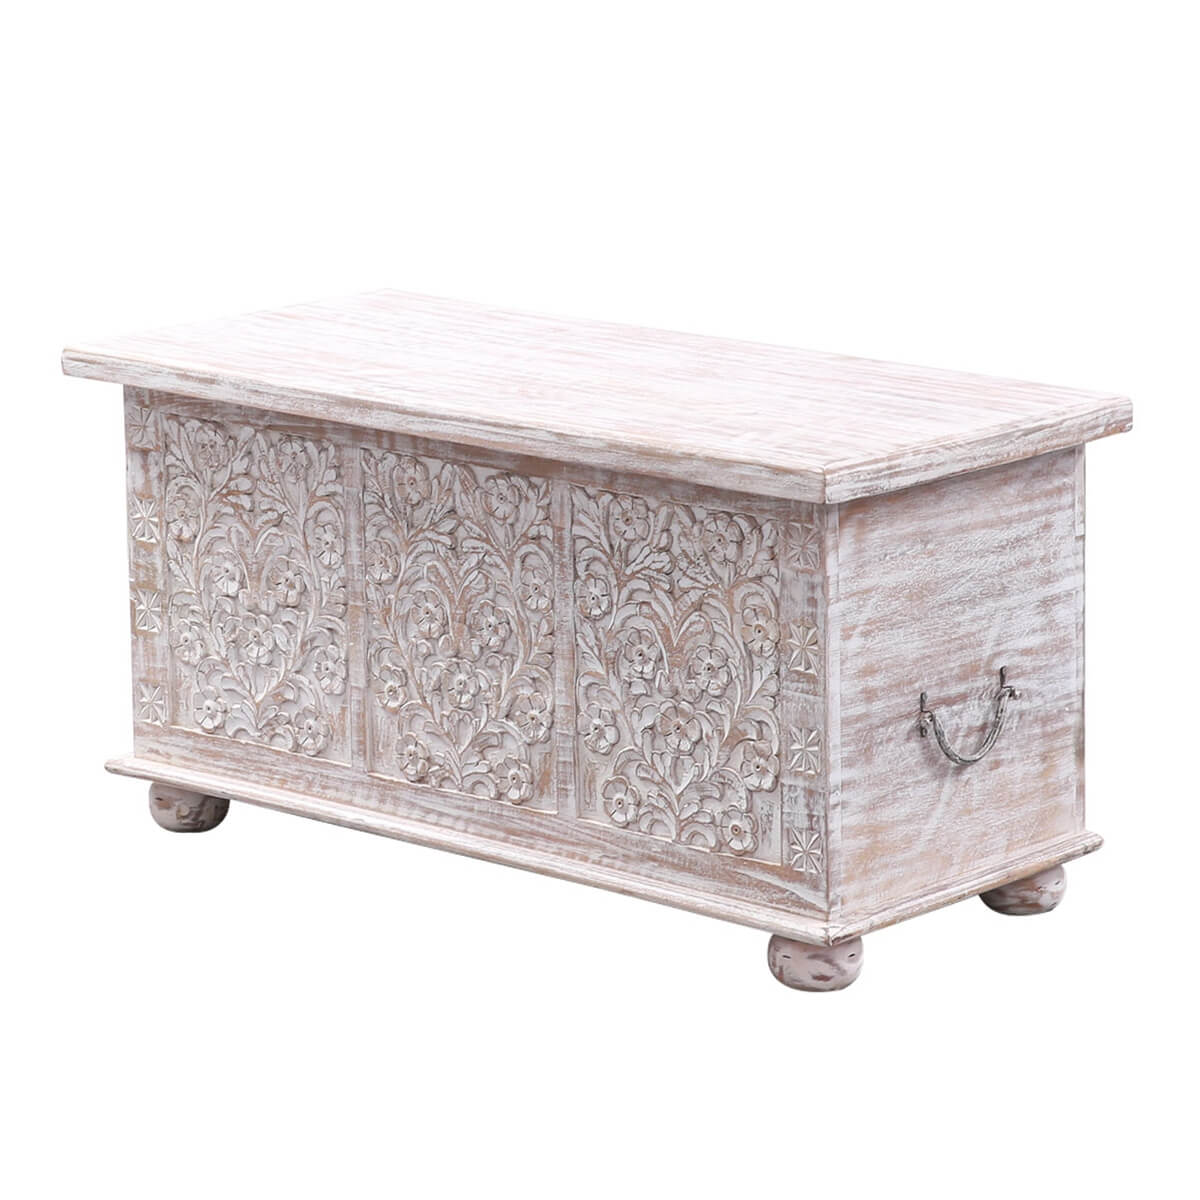 Abruzzo Floral Hand-Carved Solid Wood Storage Coffee Table Trunk